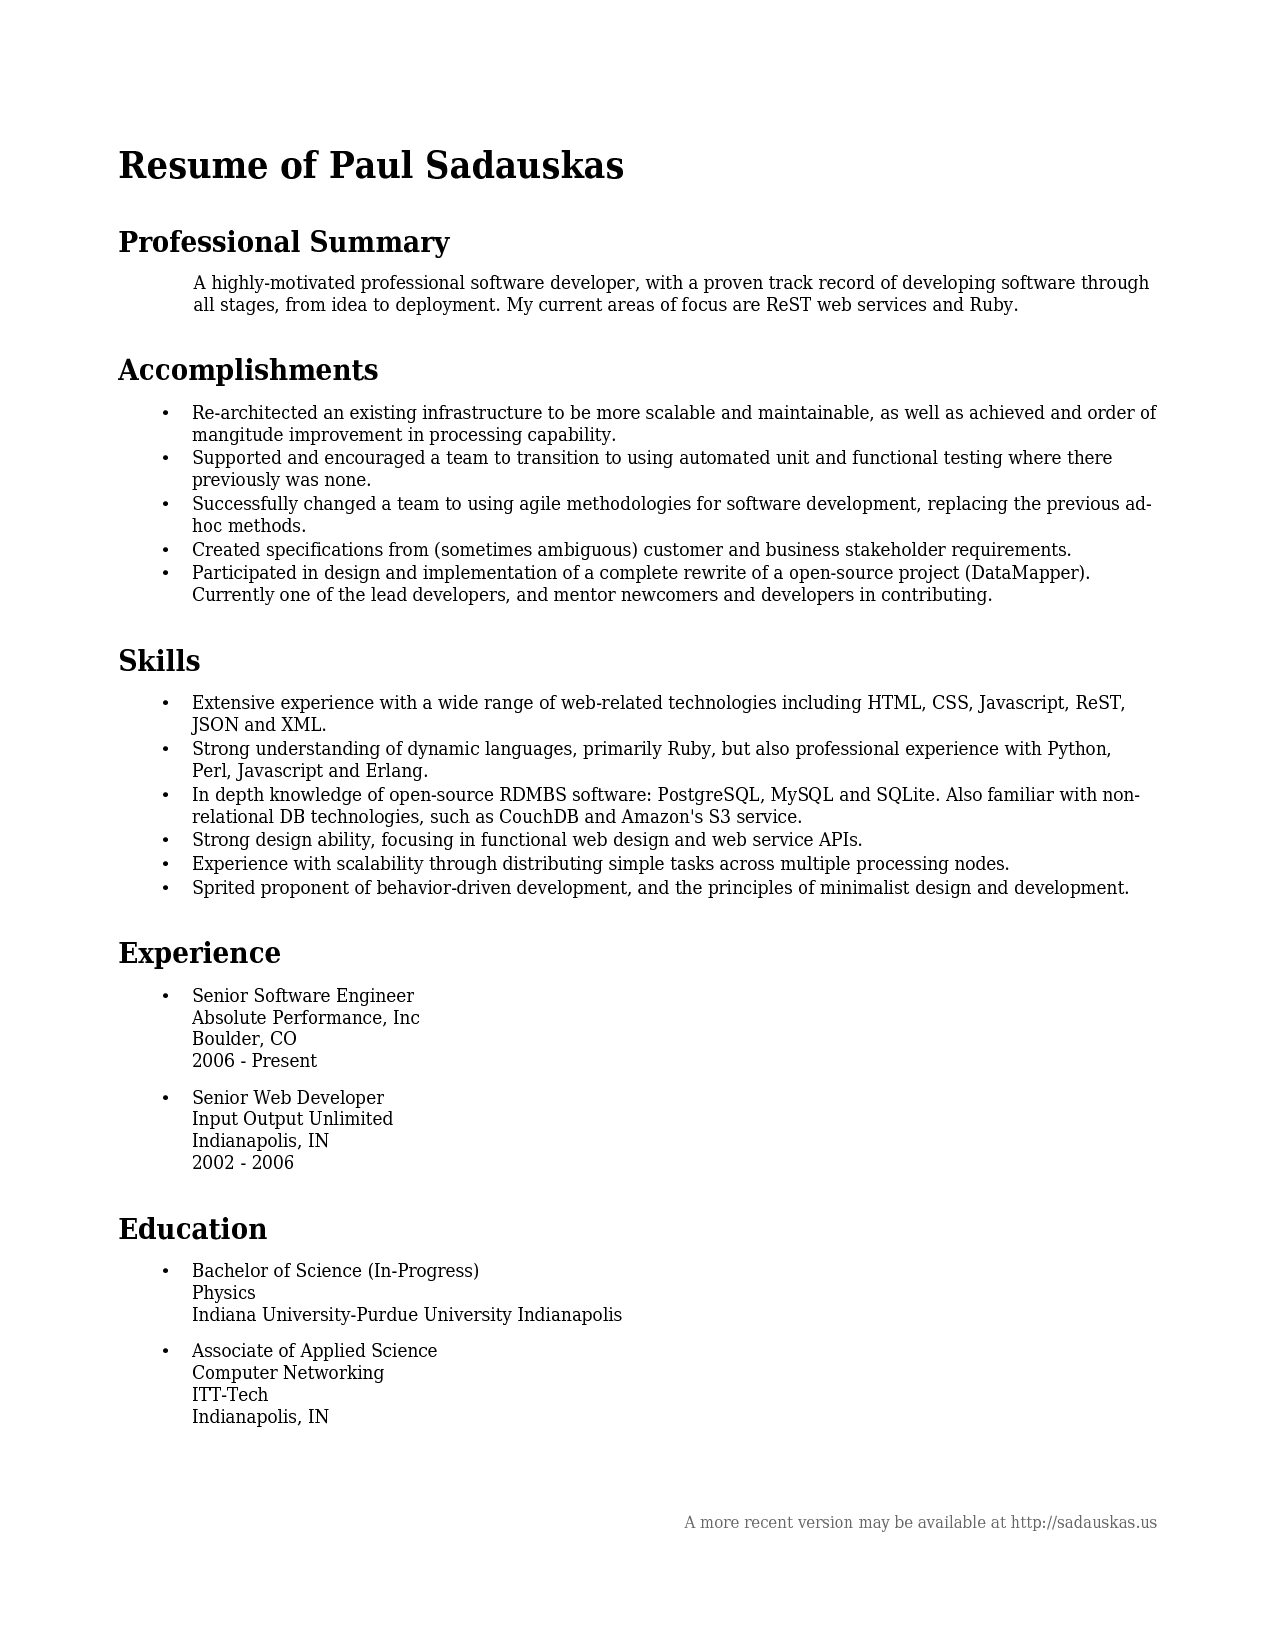 professional summary examples example of professional summary on resume paul sadauskas - Resume Professional Summary